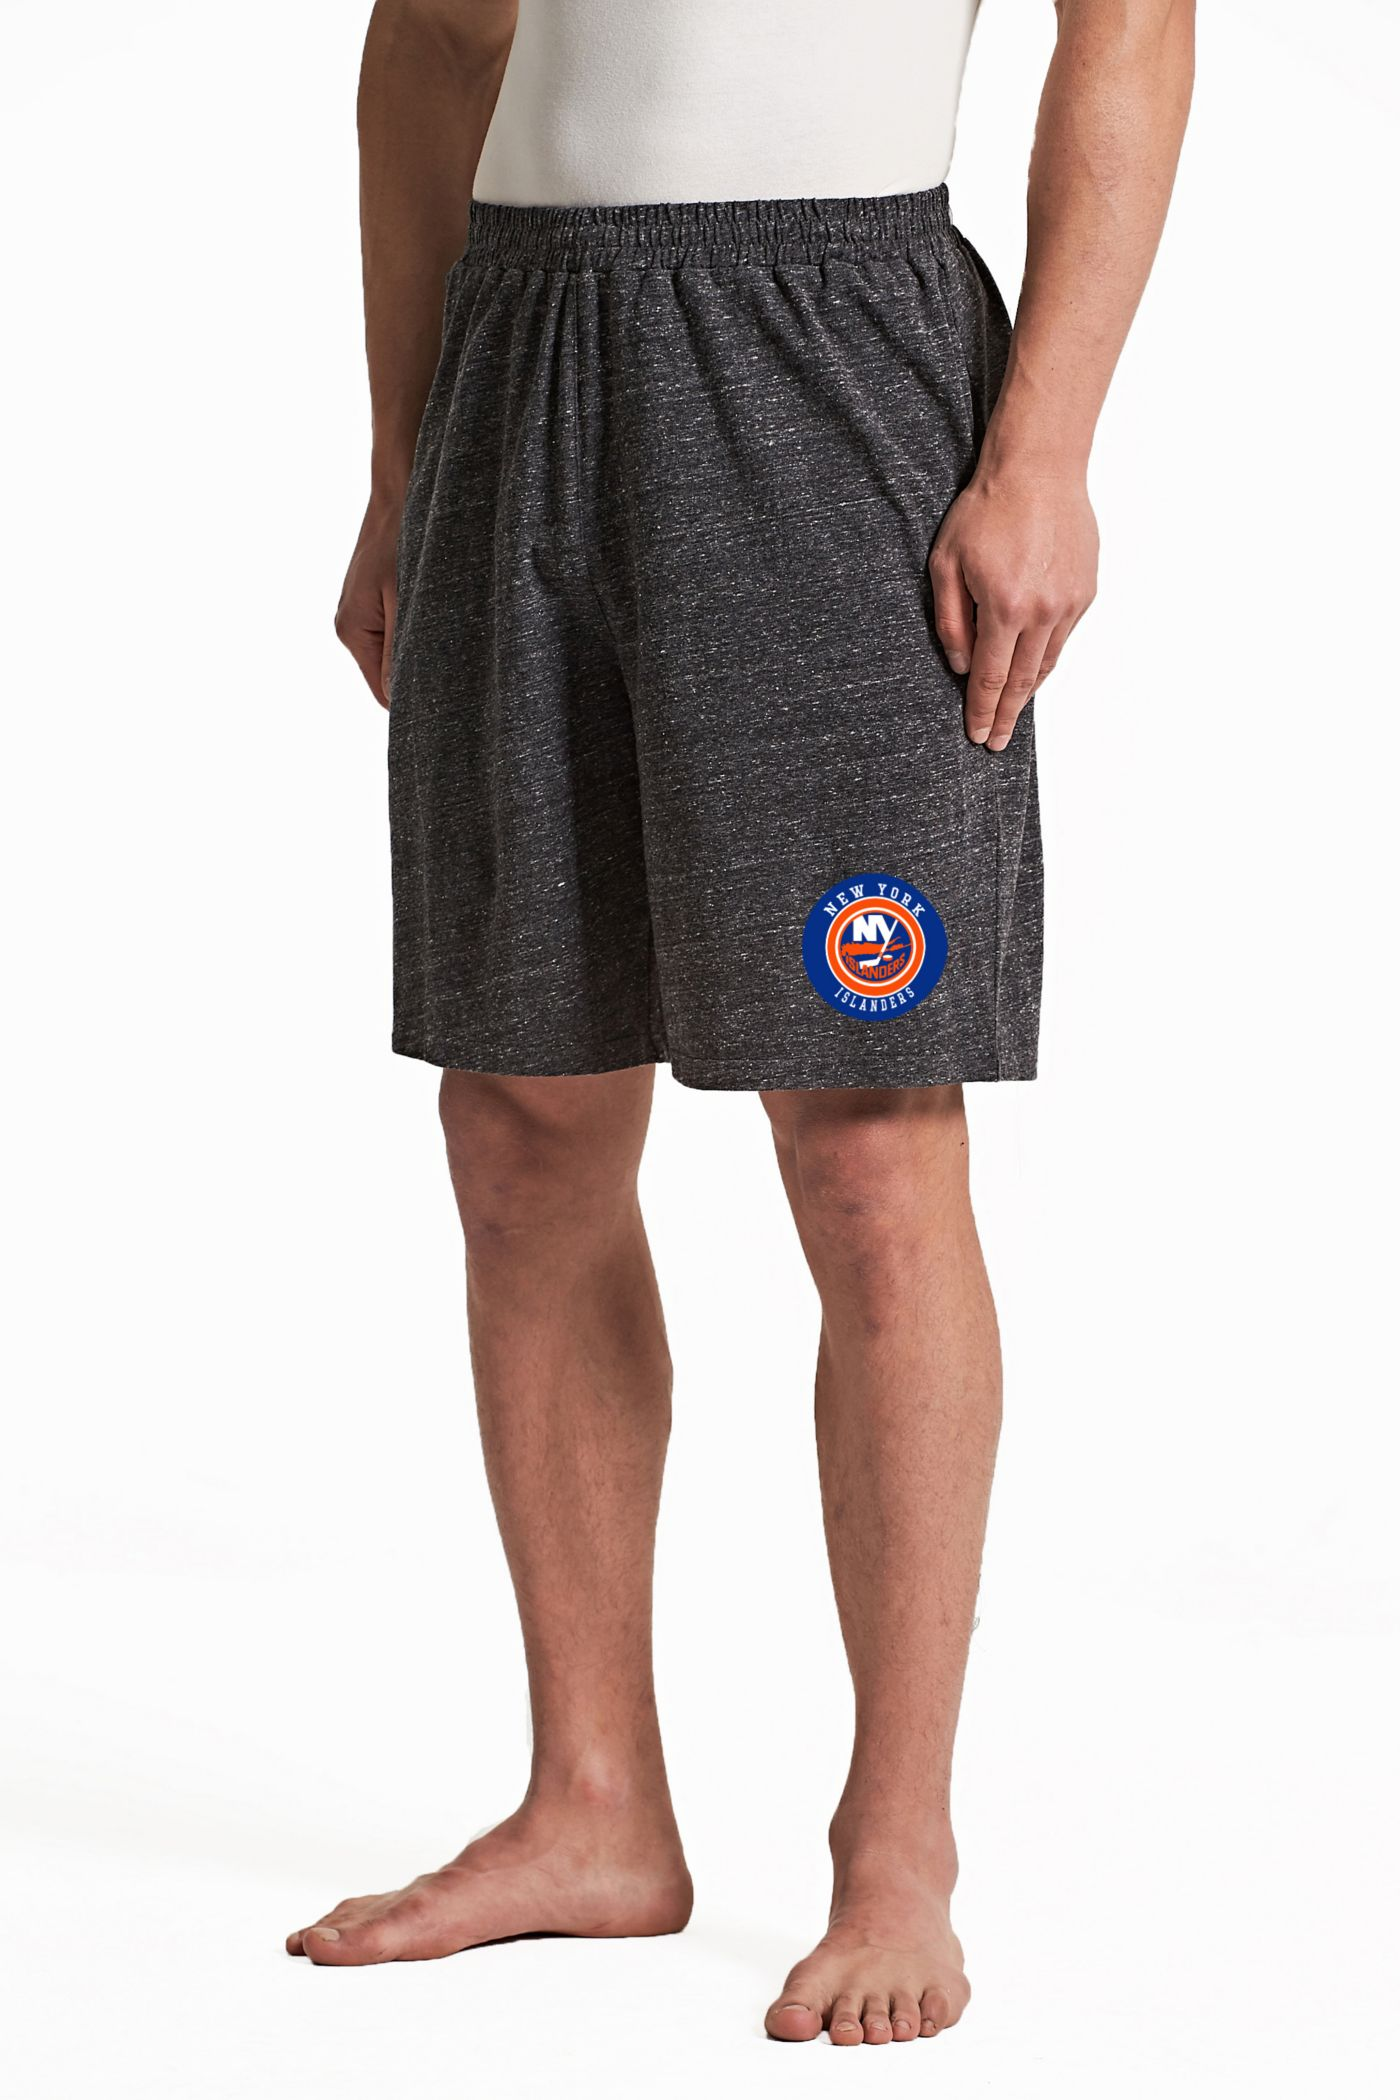 Concepts Sport Men's New York Islanders Pitch Grey Shorts